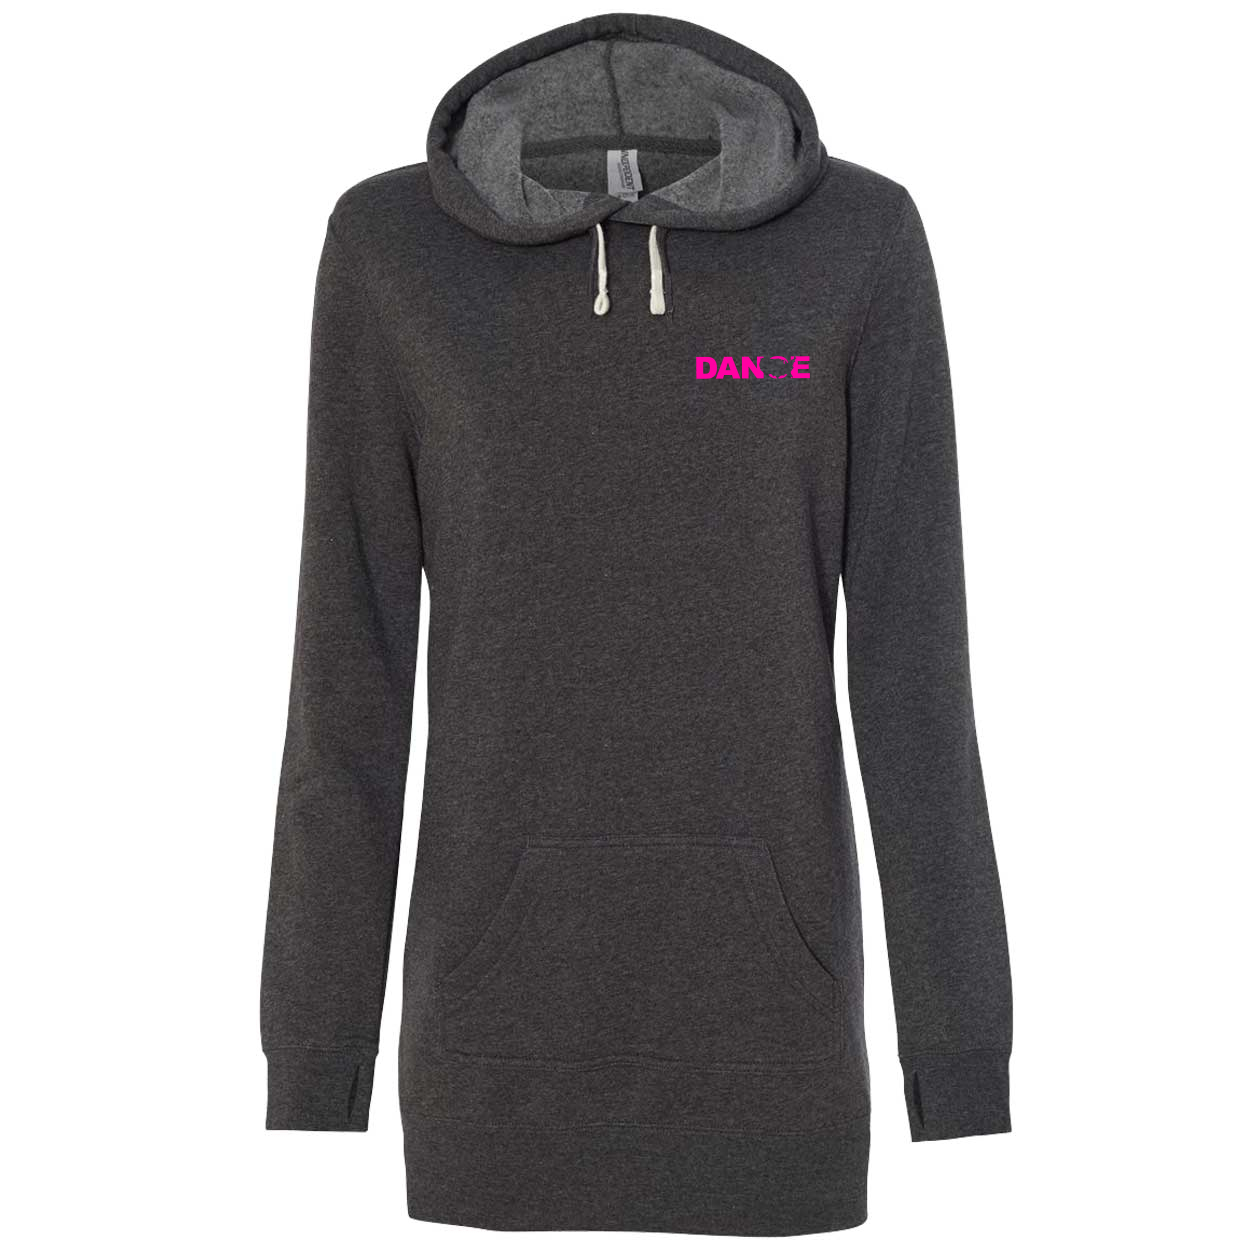 Dance United States Night Out Womens Pullover Hooded Sweatshirt Dress Carbon (Pink Logo)